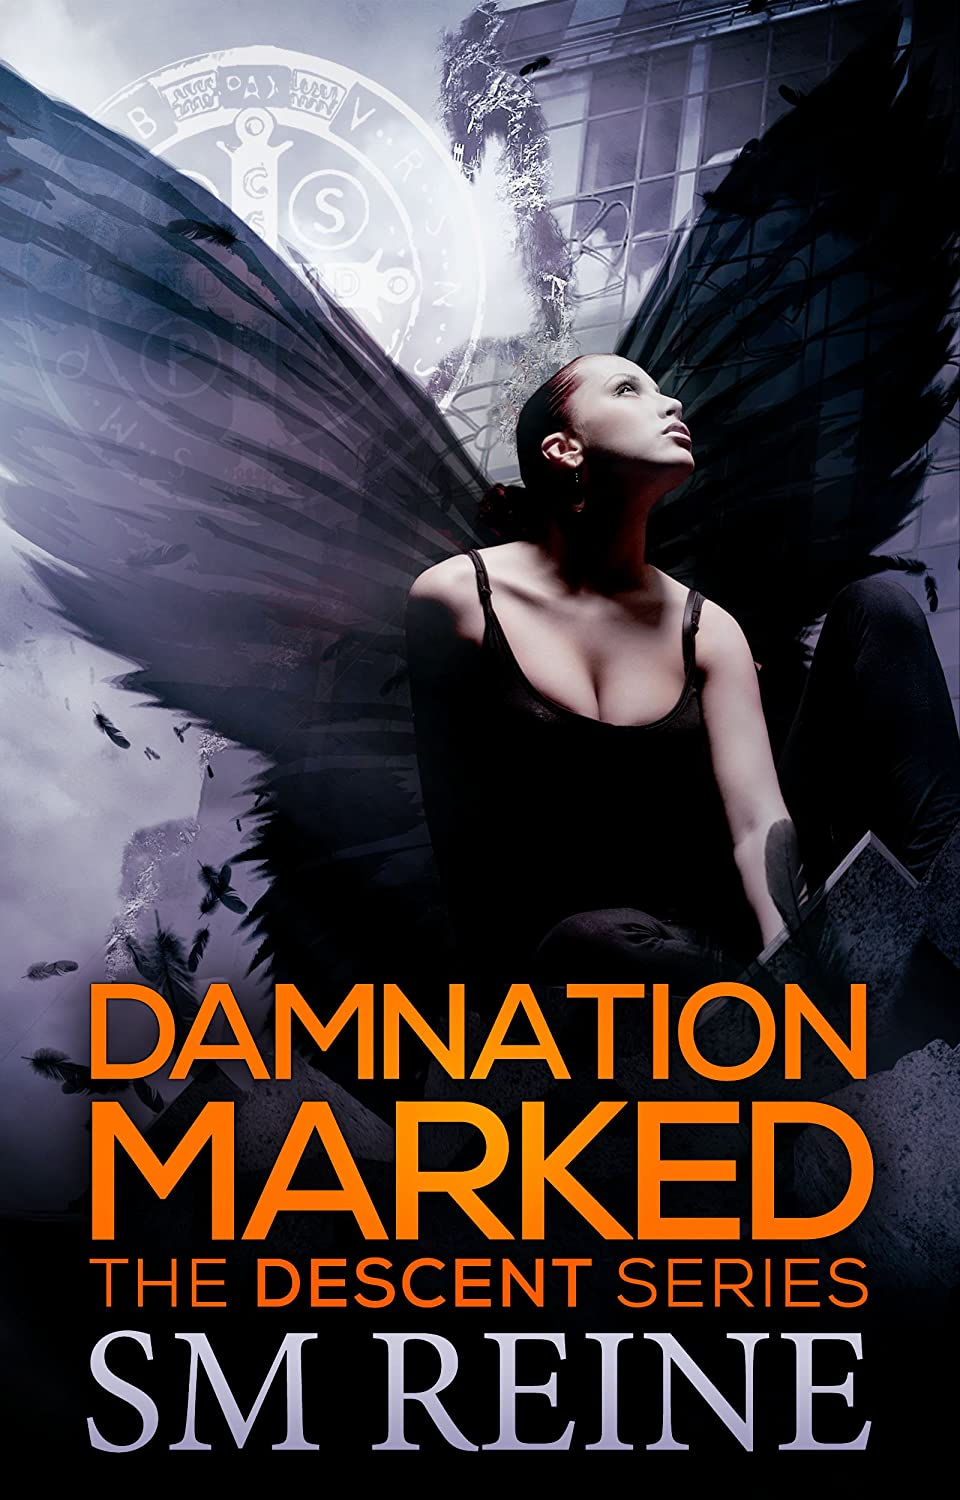 damnationmarked